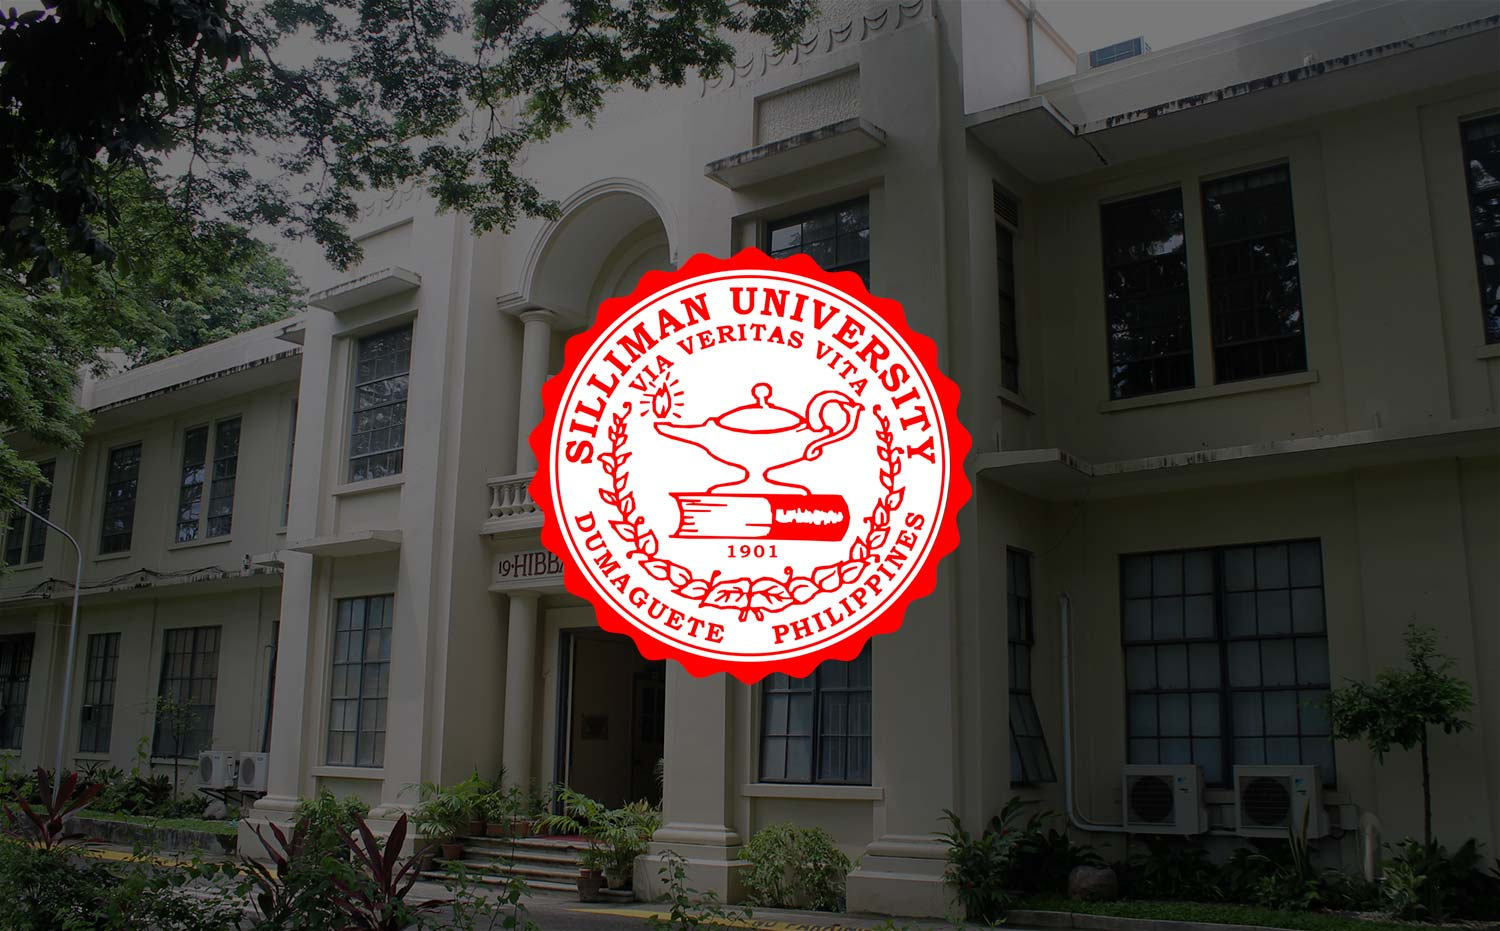 PRESS STATEMENT: Claimants of Silliman Land Gather to Press Claims